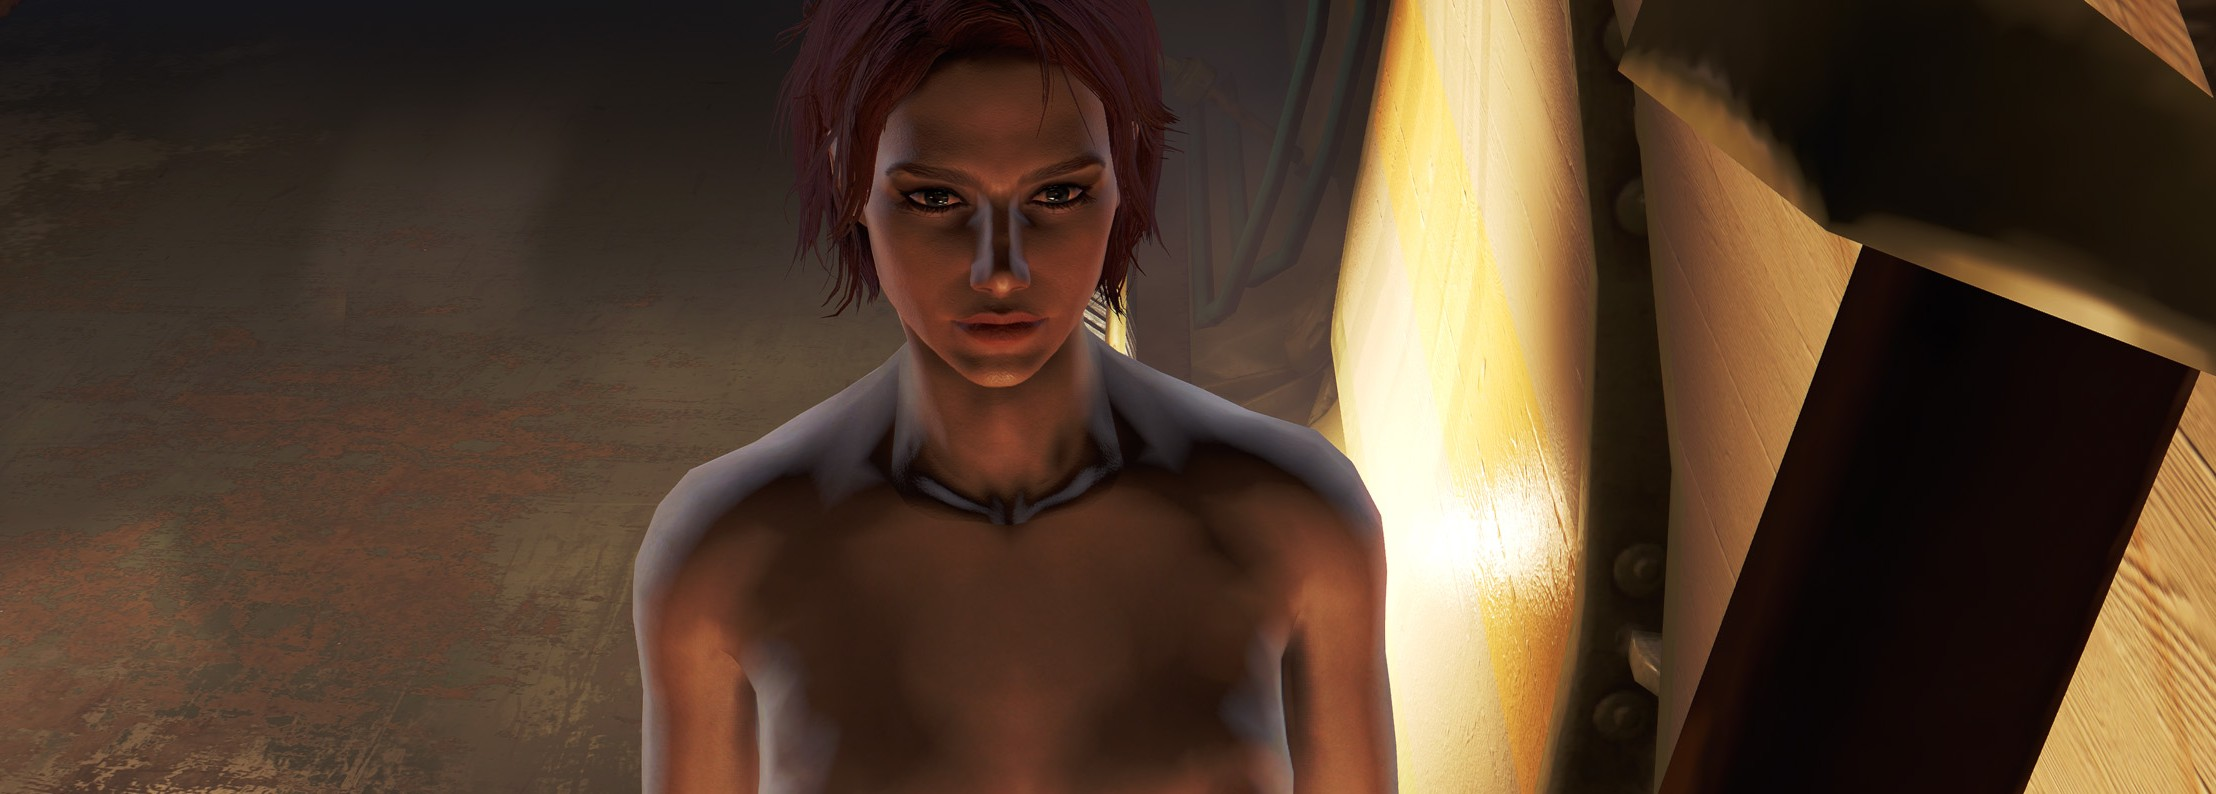 Fallout 4 naked mod hentia films